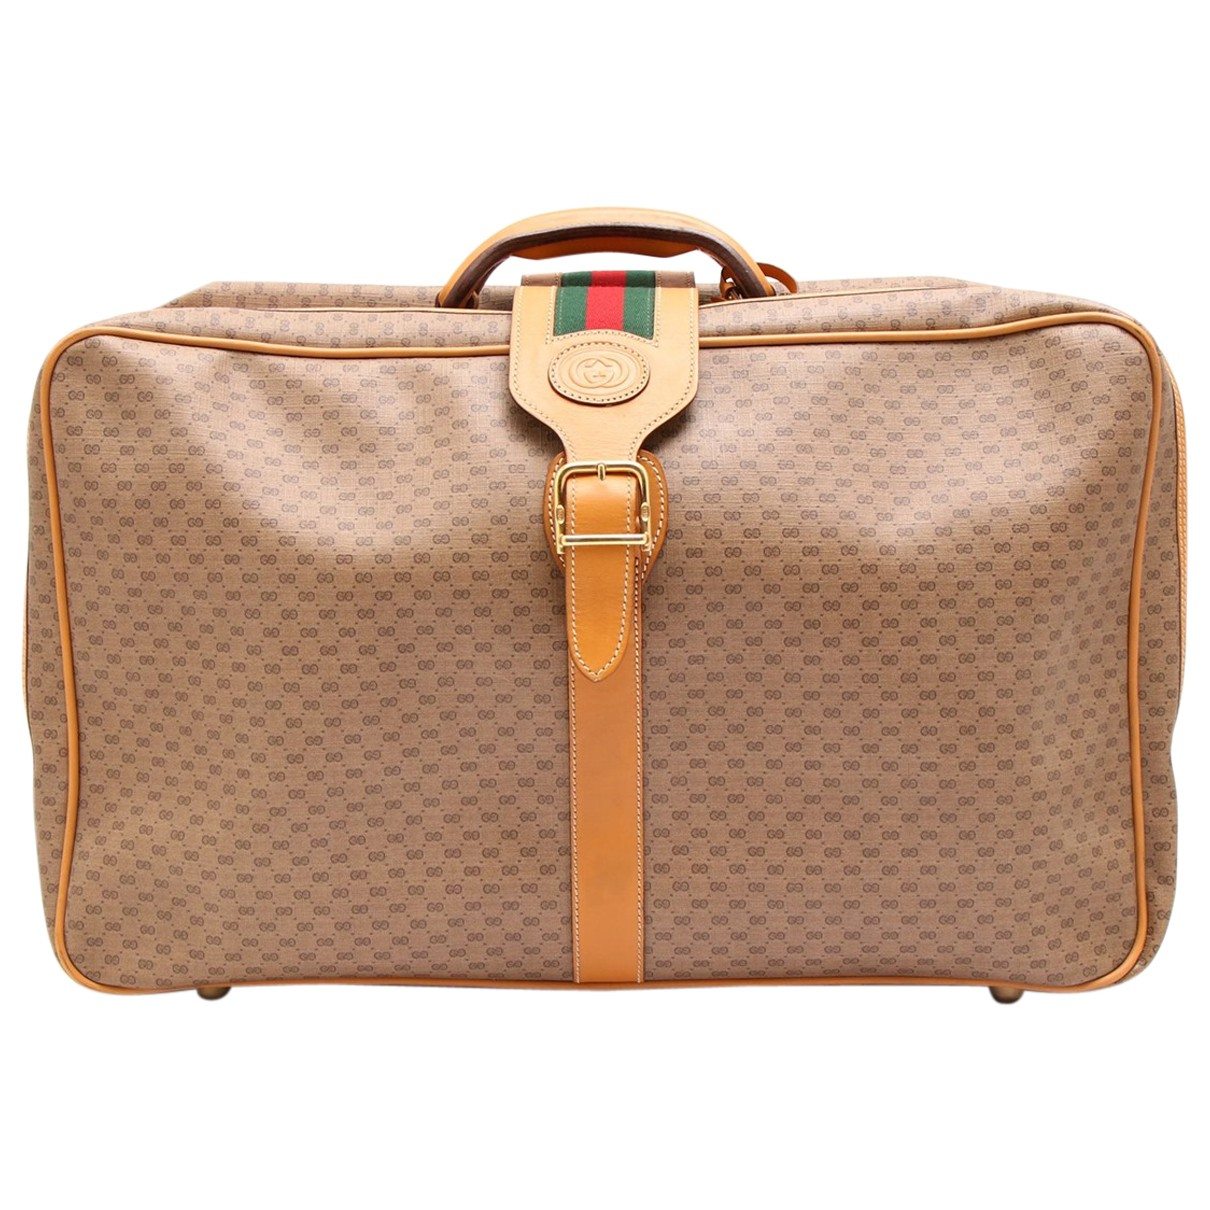 Gucci N Beige Cloth Travel bag for Women N